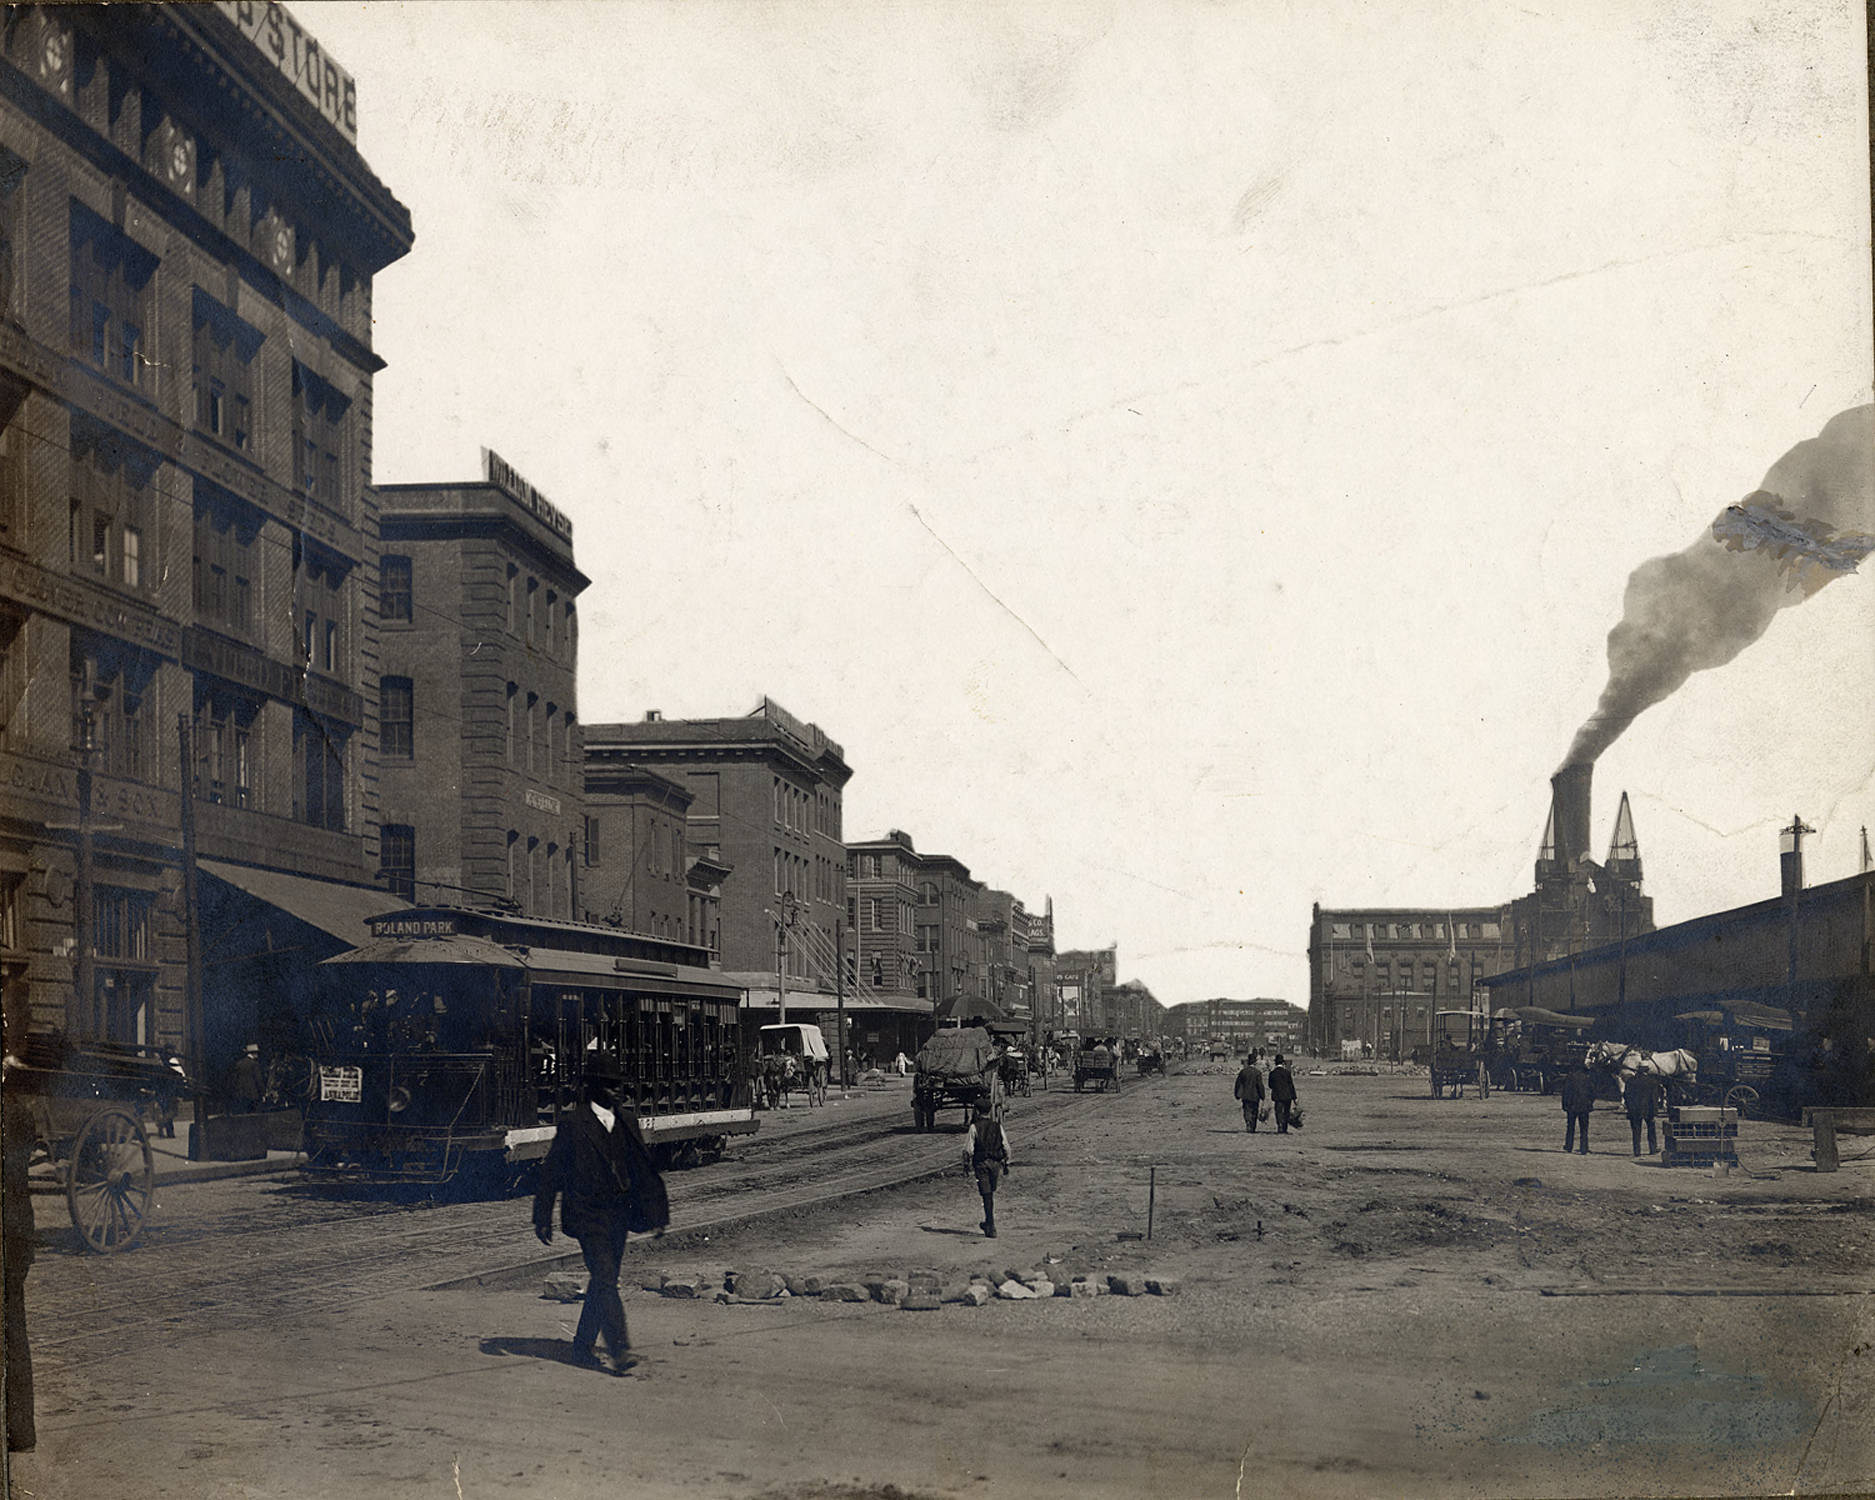 What Did East Pratt Street Look Like in 1908?